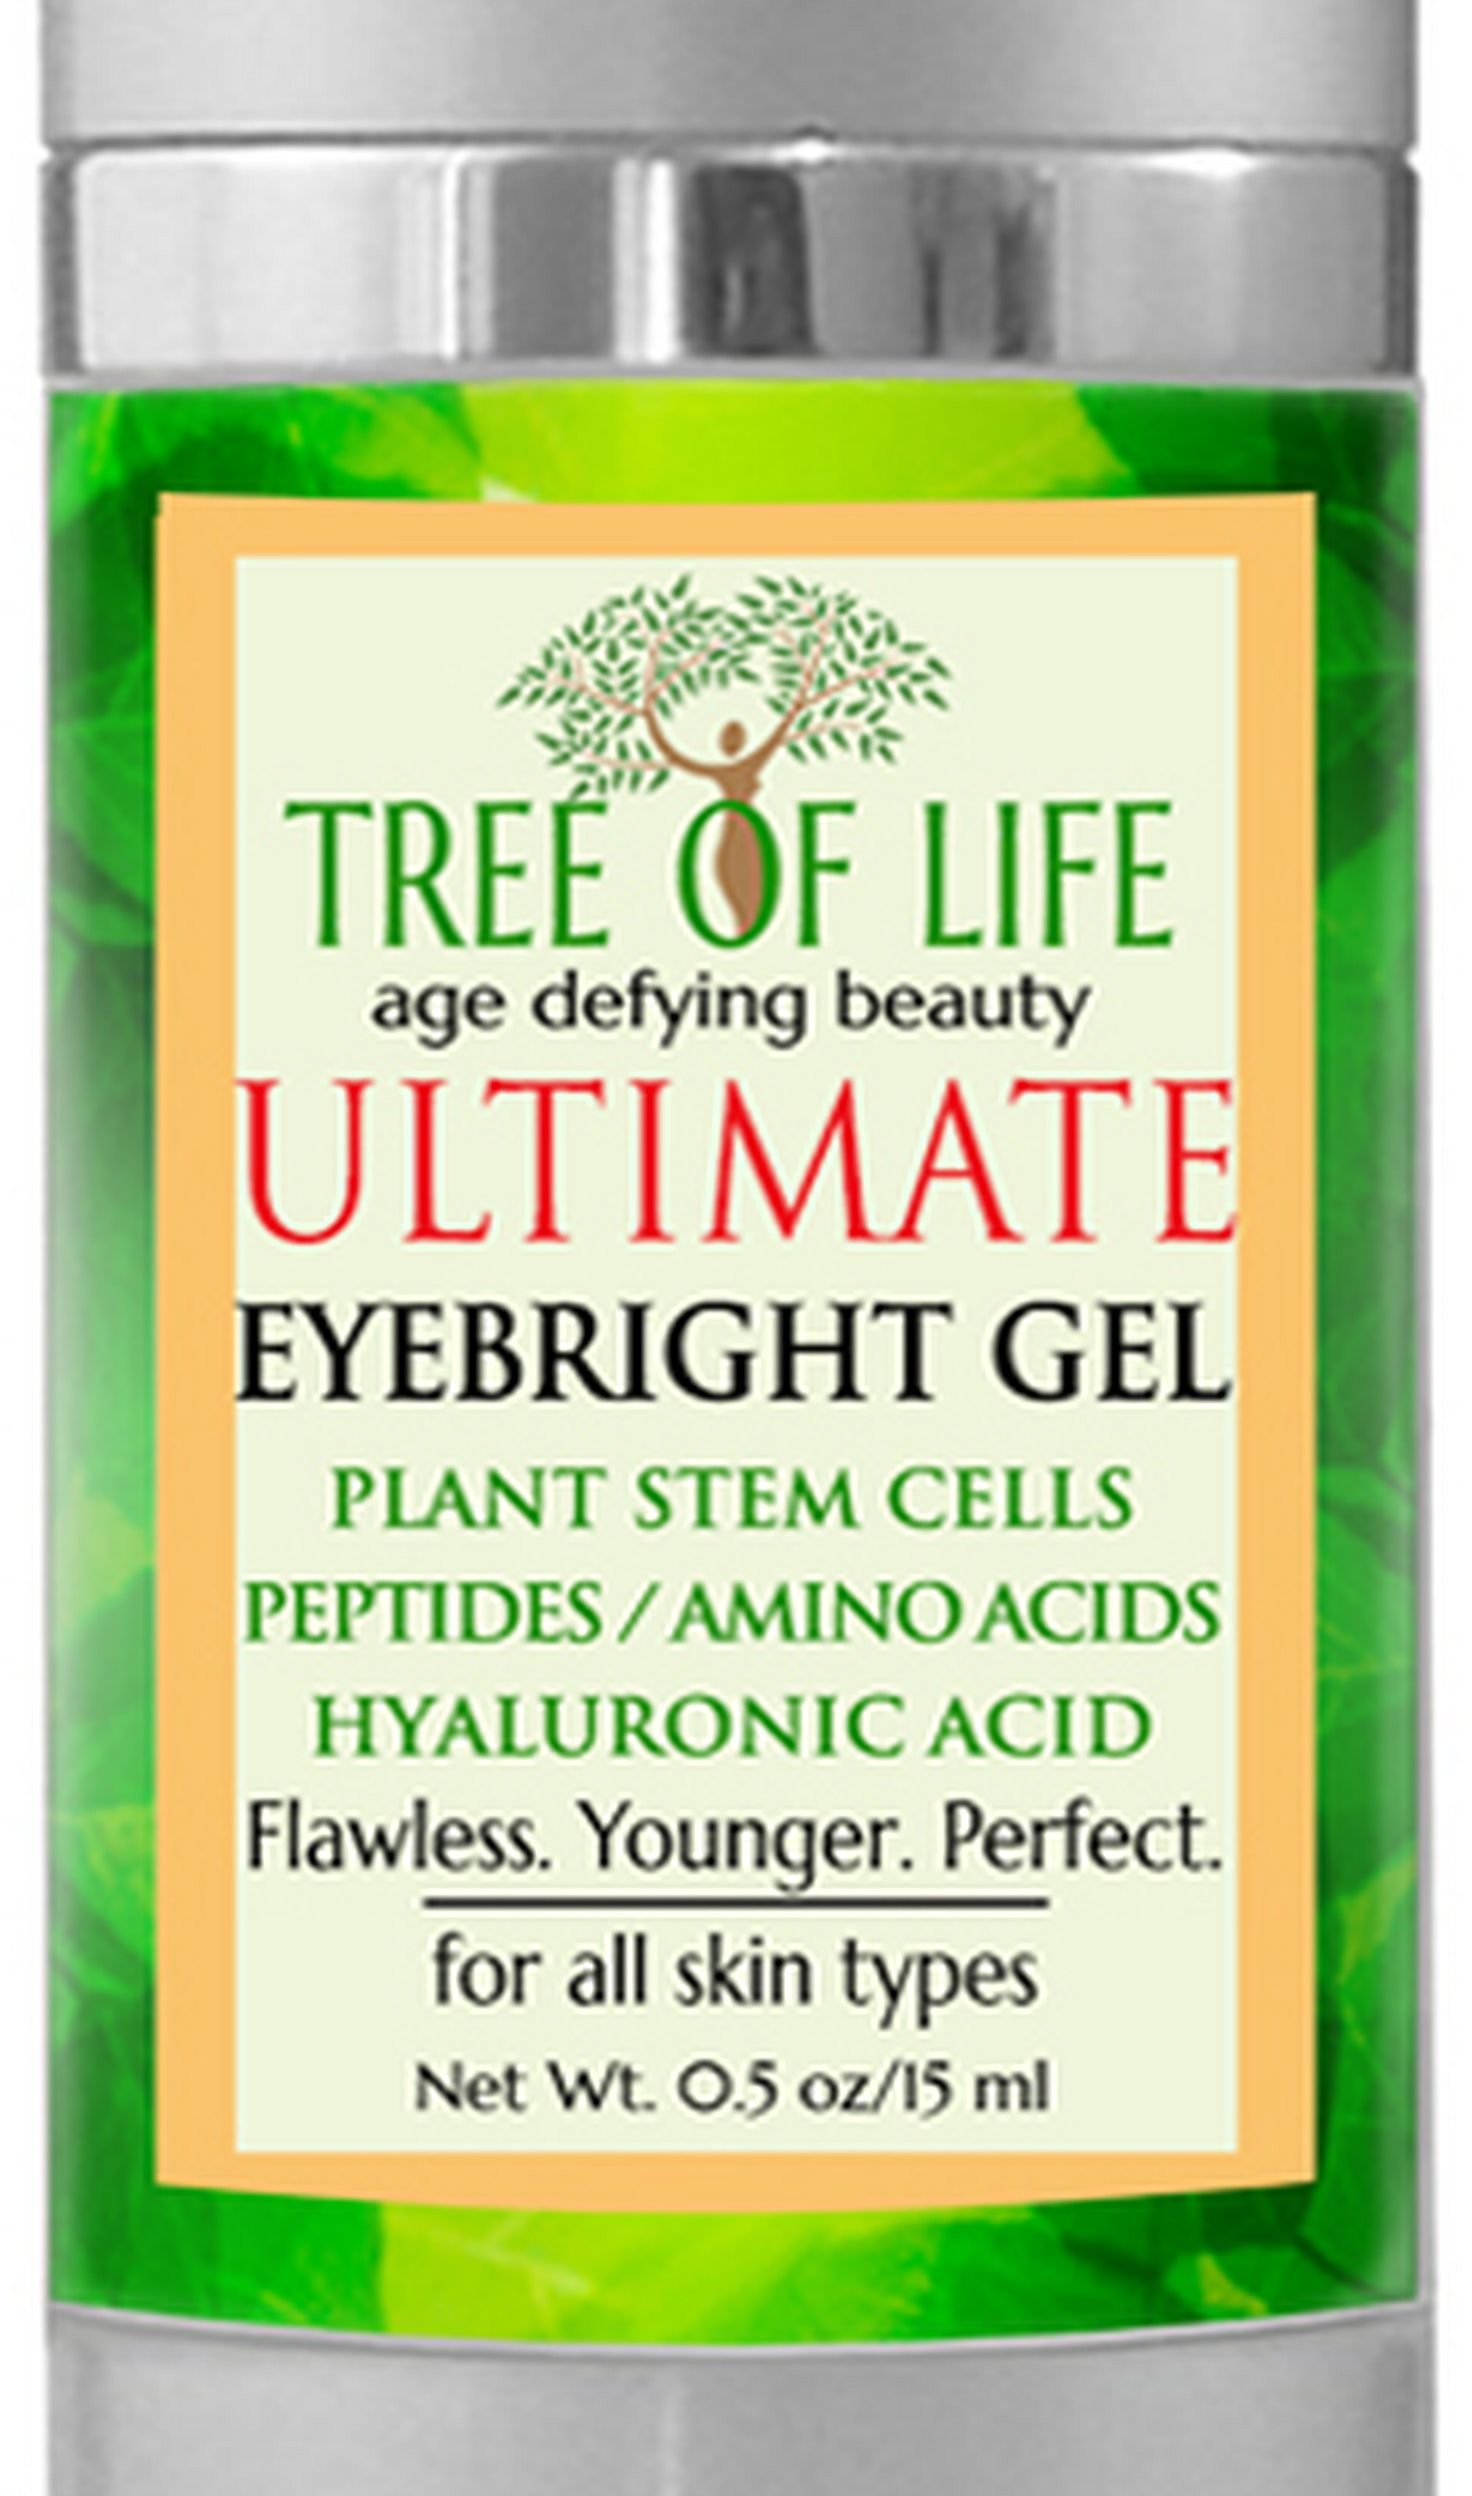 Anti Aging Eye Gel for Dark Circles and Puffiness by Flawless. Younger. Perfect.